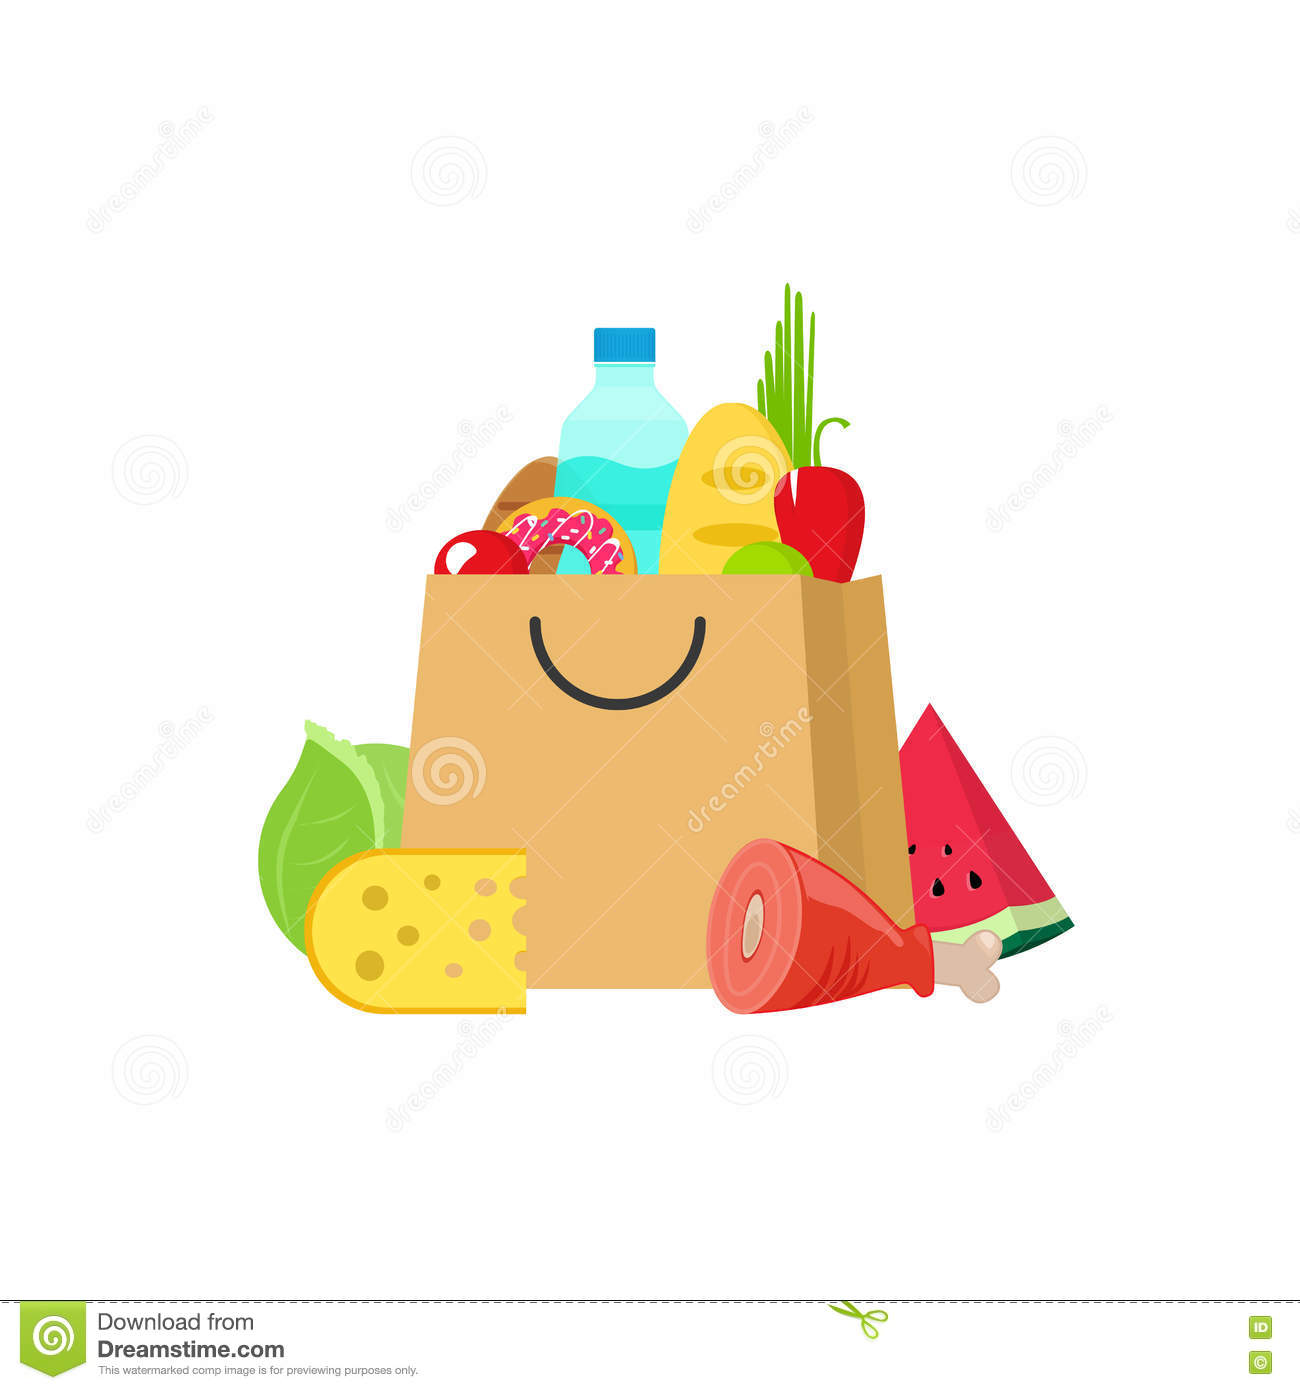 shopping in supermarket essay Free coursework on the uk supermarket and superstore market from essayukcom, the uk essays company for essay, dissertation and coursework writing.